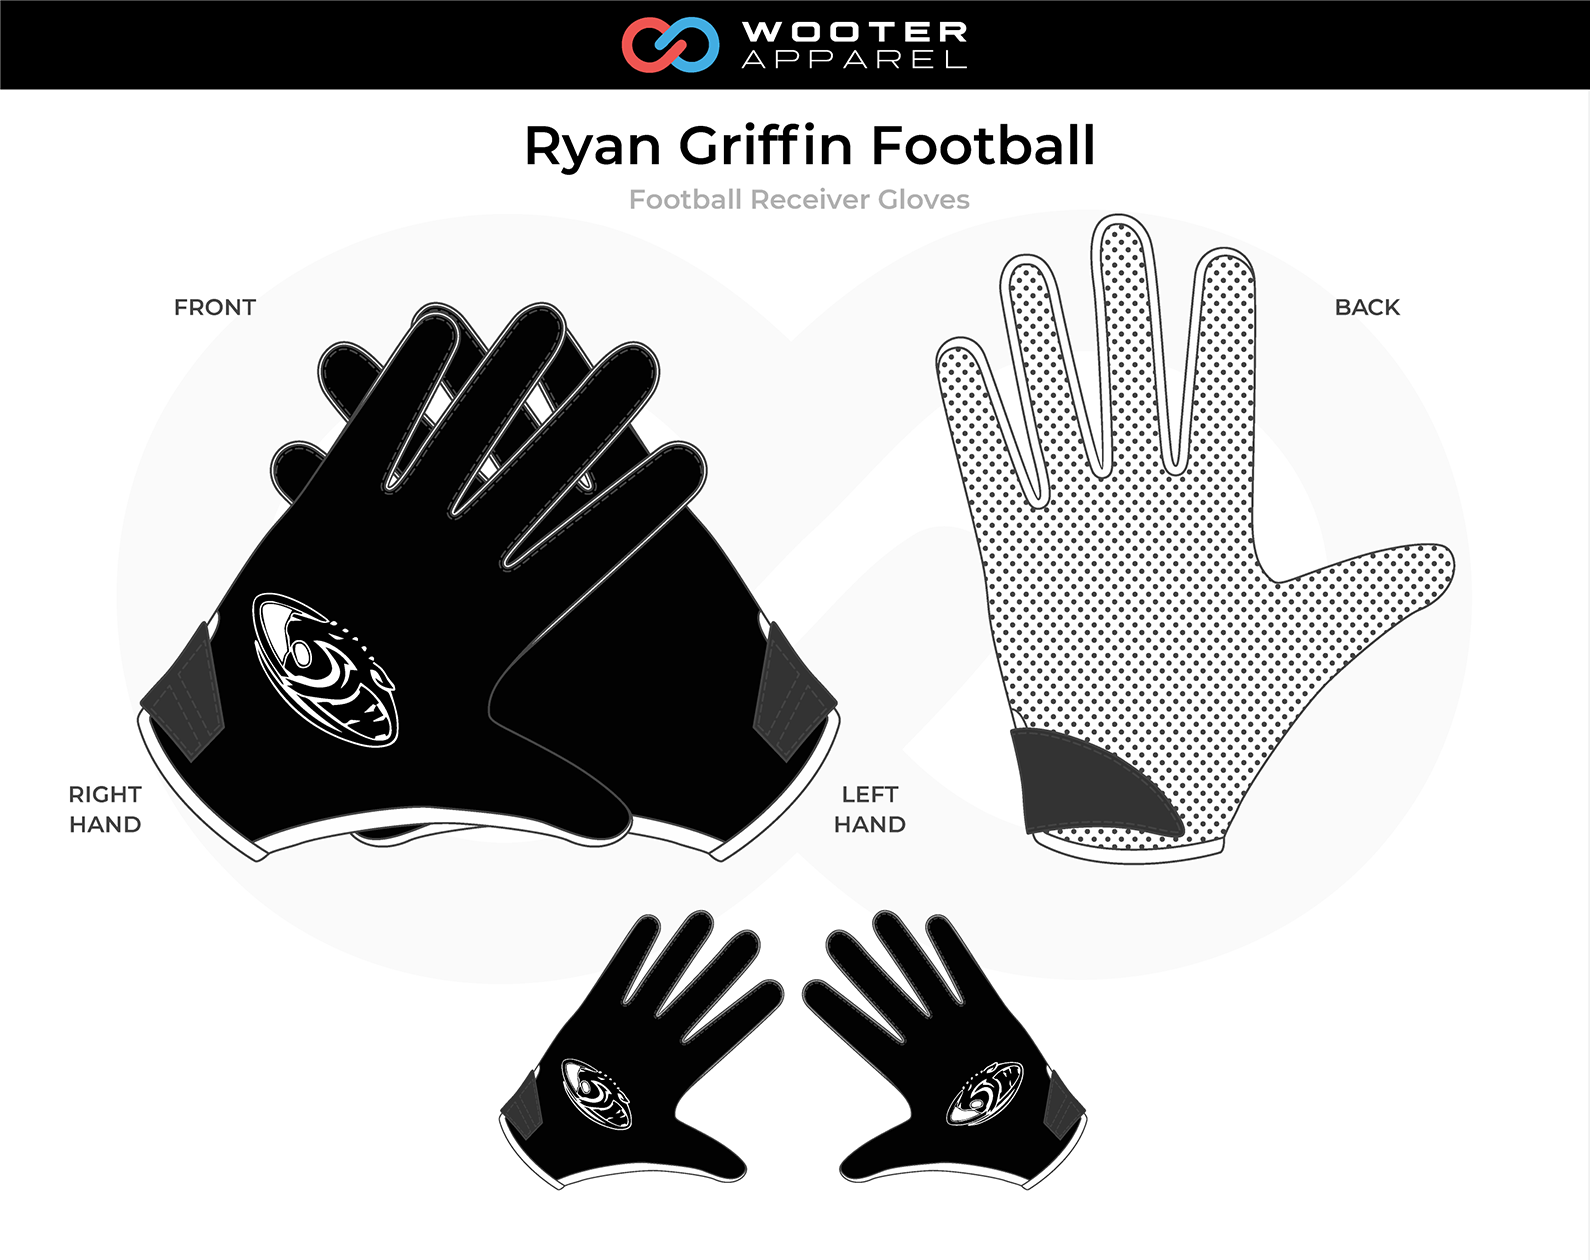 2019-03-14 Ryan Griffin Football Receiver Gloves.png